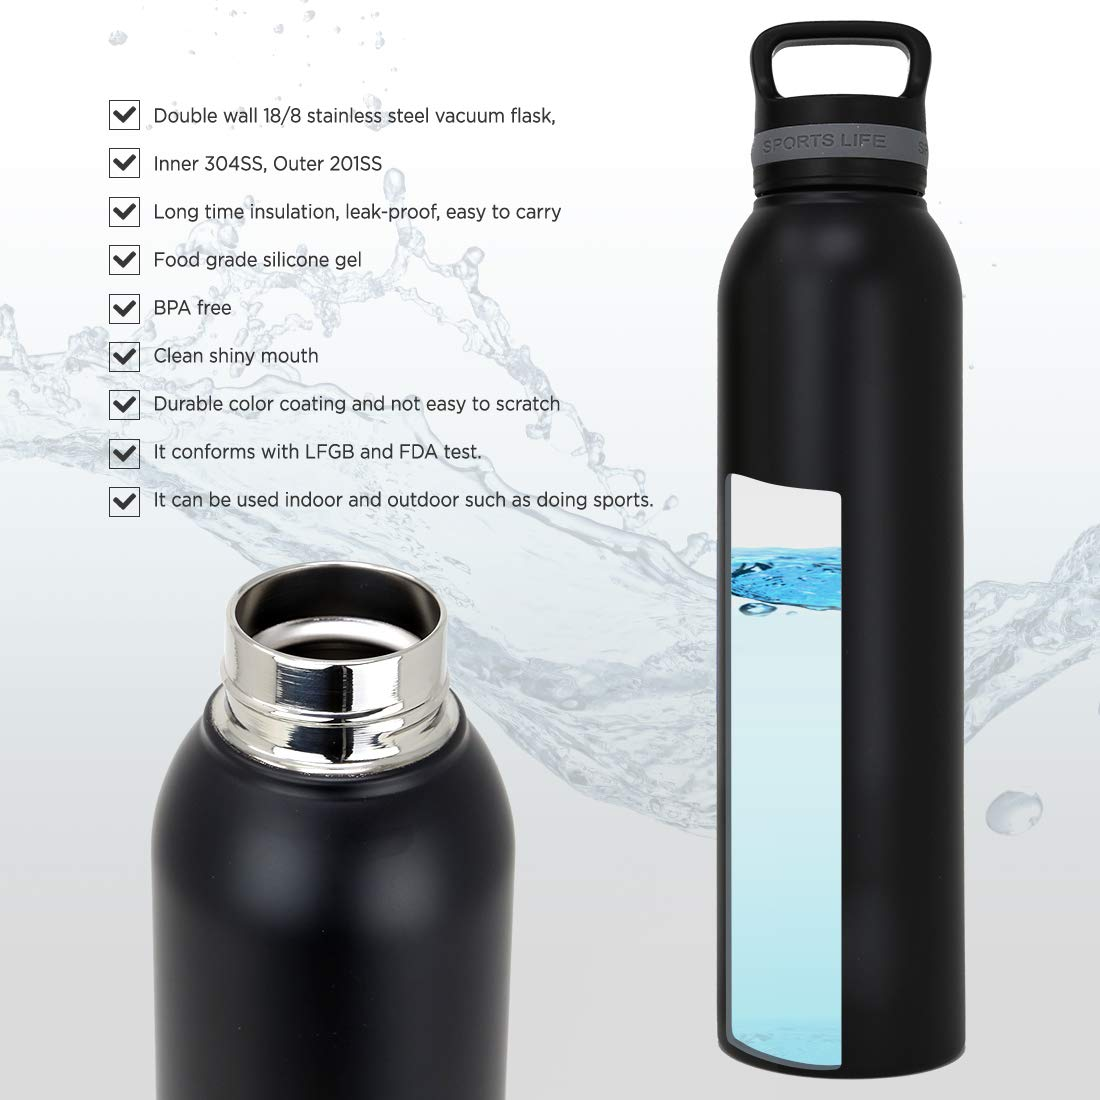 Insulated Water Bottle /– Reusable Stainless Steel Thermal Lock Vacuum Insulated Travel Thermos with Leakproof Lid /– BPA-Free, Durable, Washable Portable Container for Cold, Hot Drinks 31.8 Nomad and Parkit